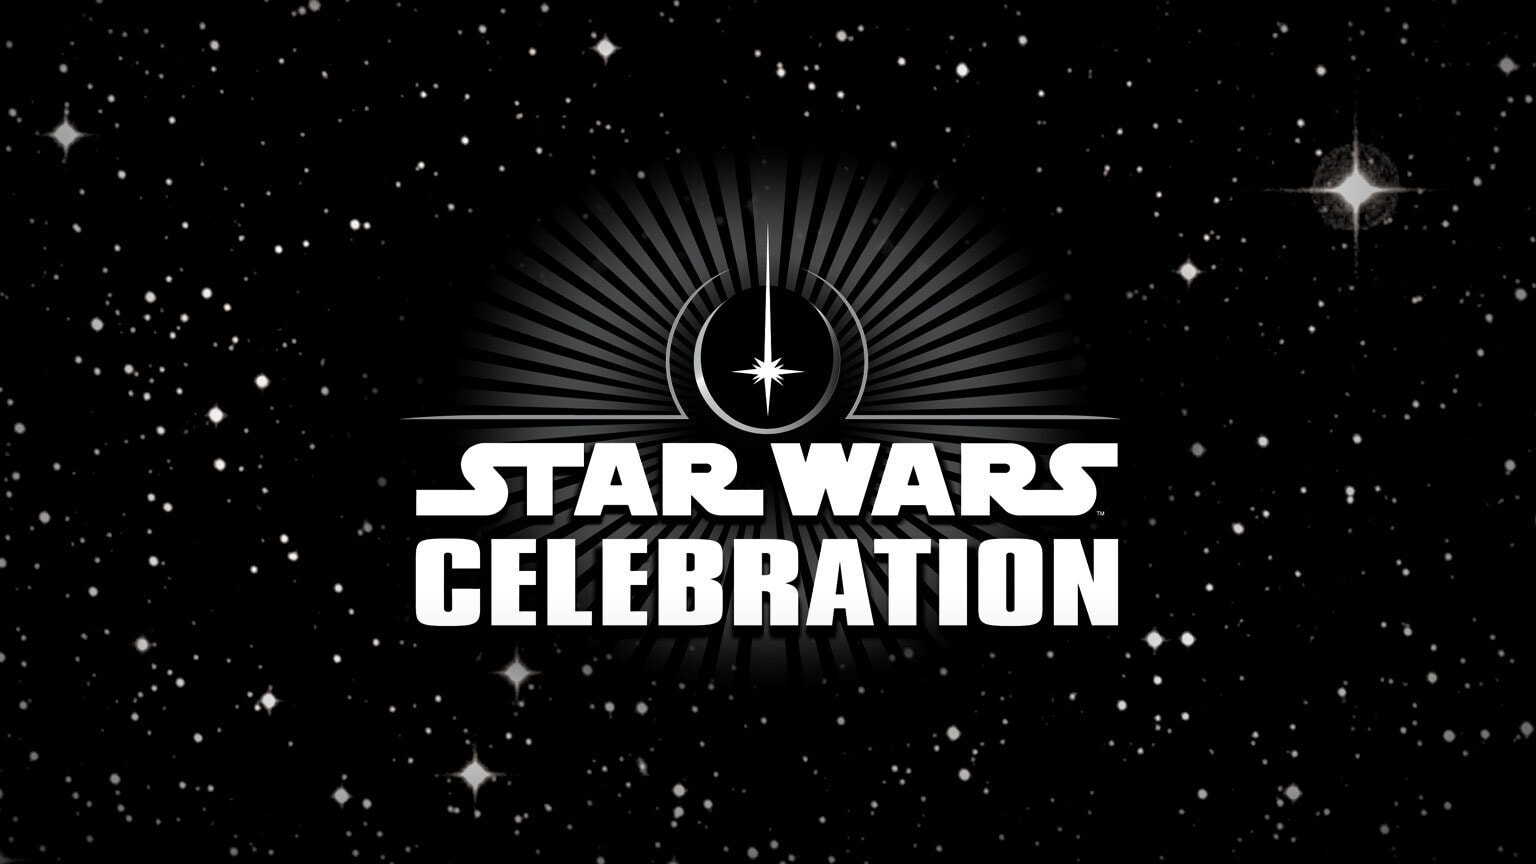 Star Wars Celebration Anaheim 2022 Dates Changing